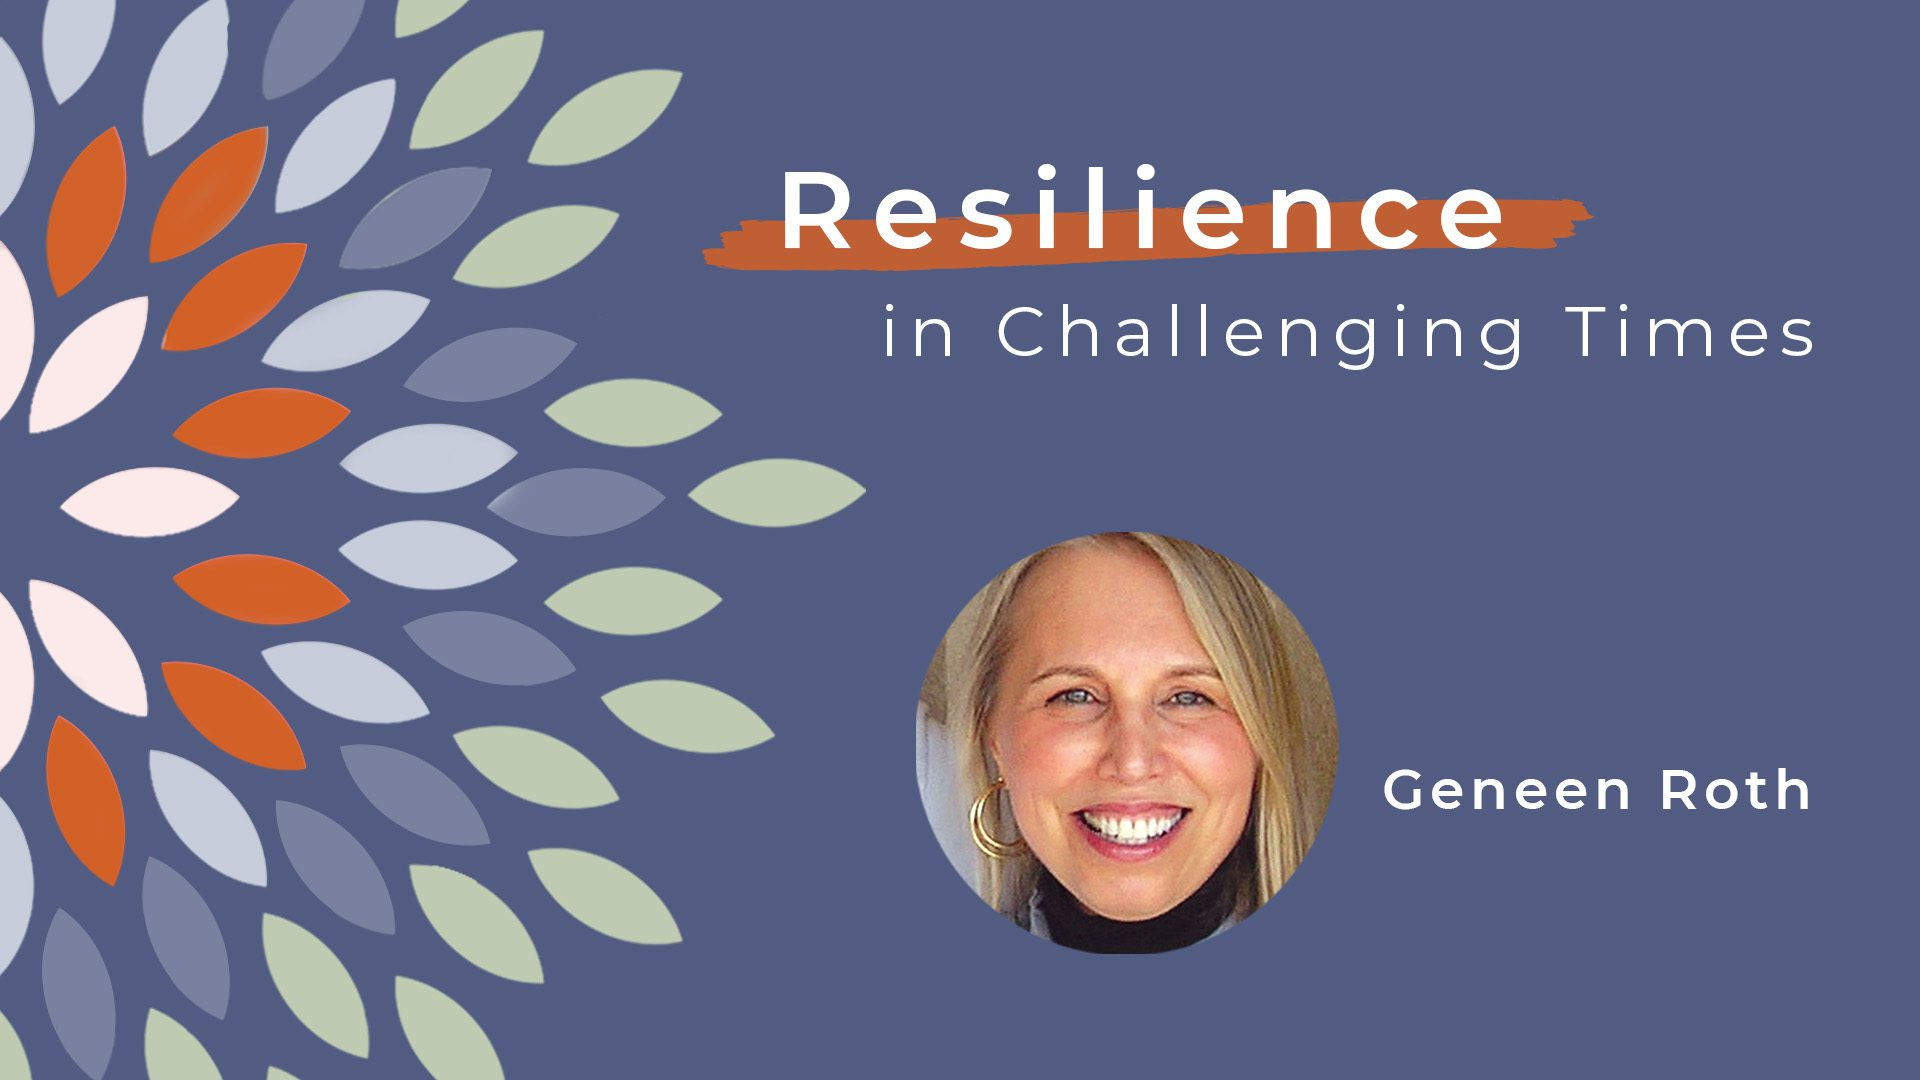 Resiliece-video-geneen-roth-title-card